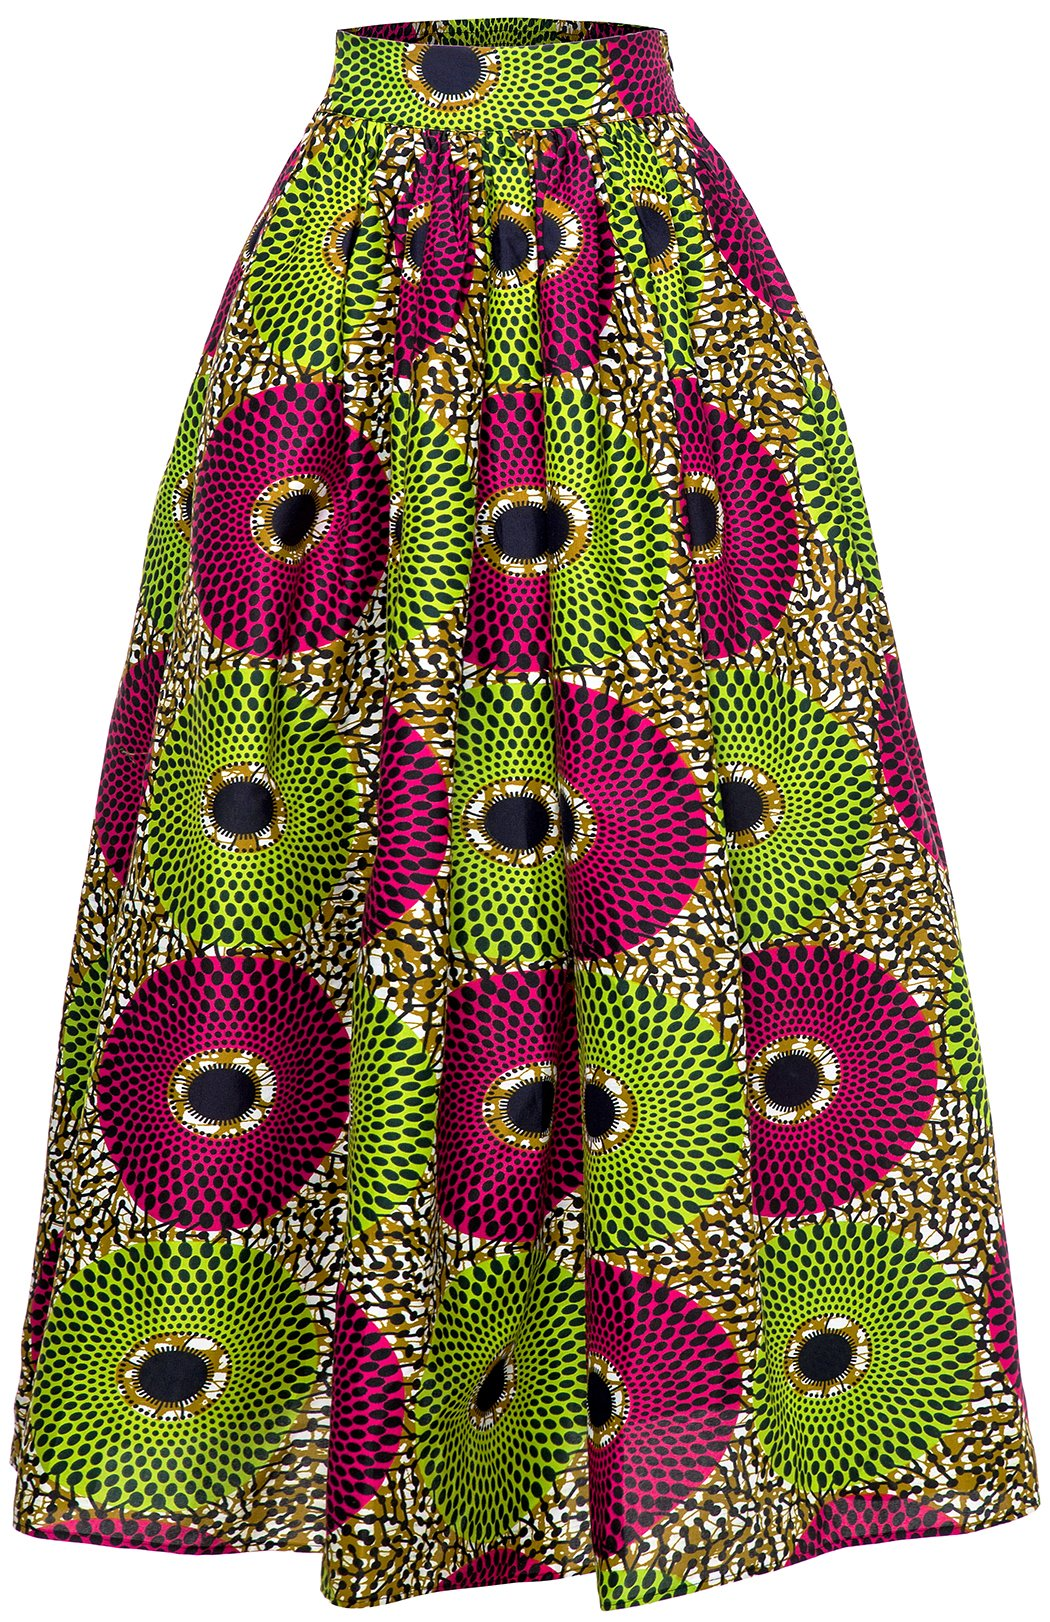 Women African Traditional Costume Ankara Print Skirt Dashiki Long Skirts (X-Large, B)